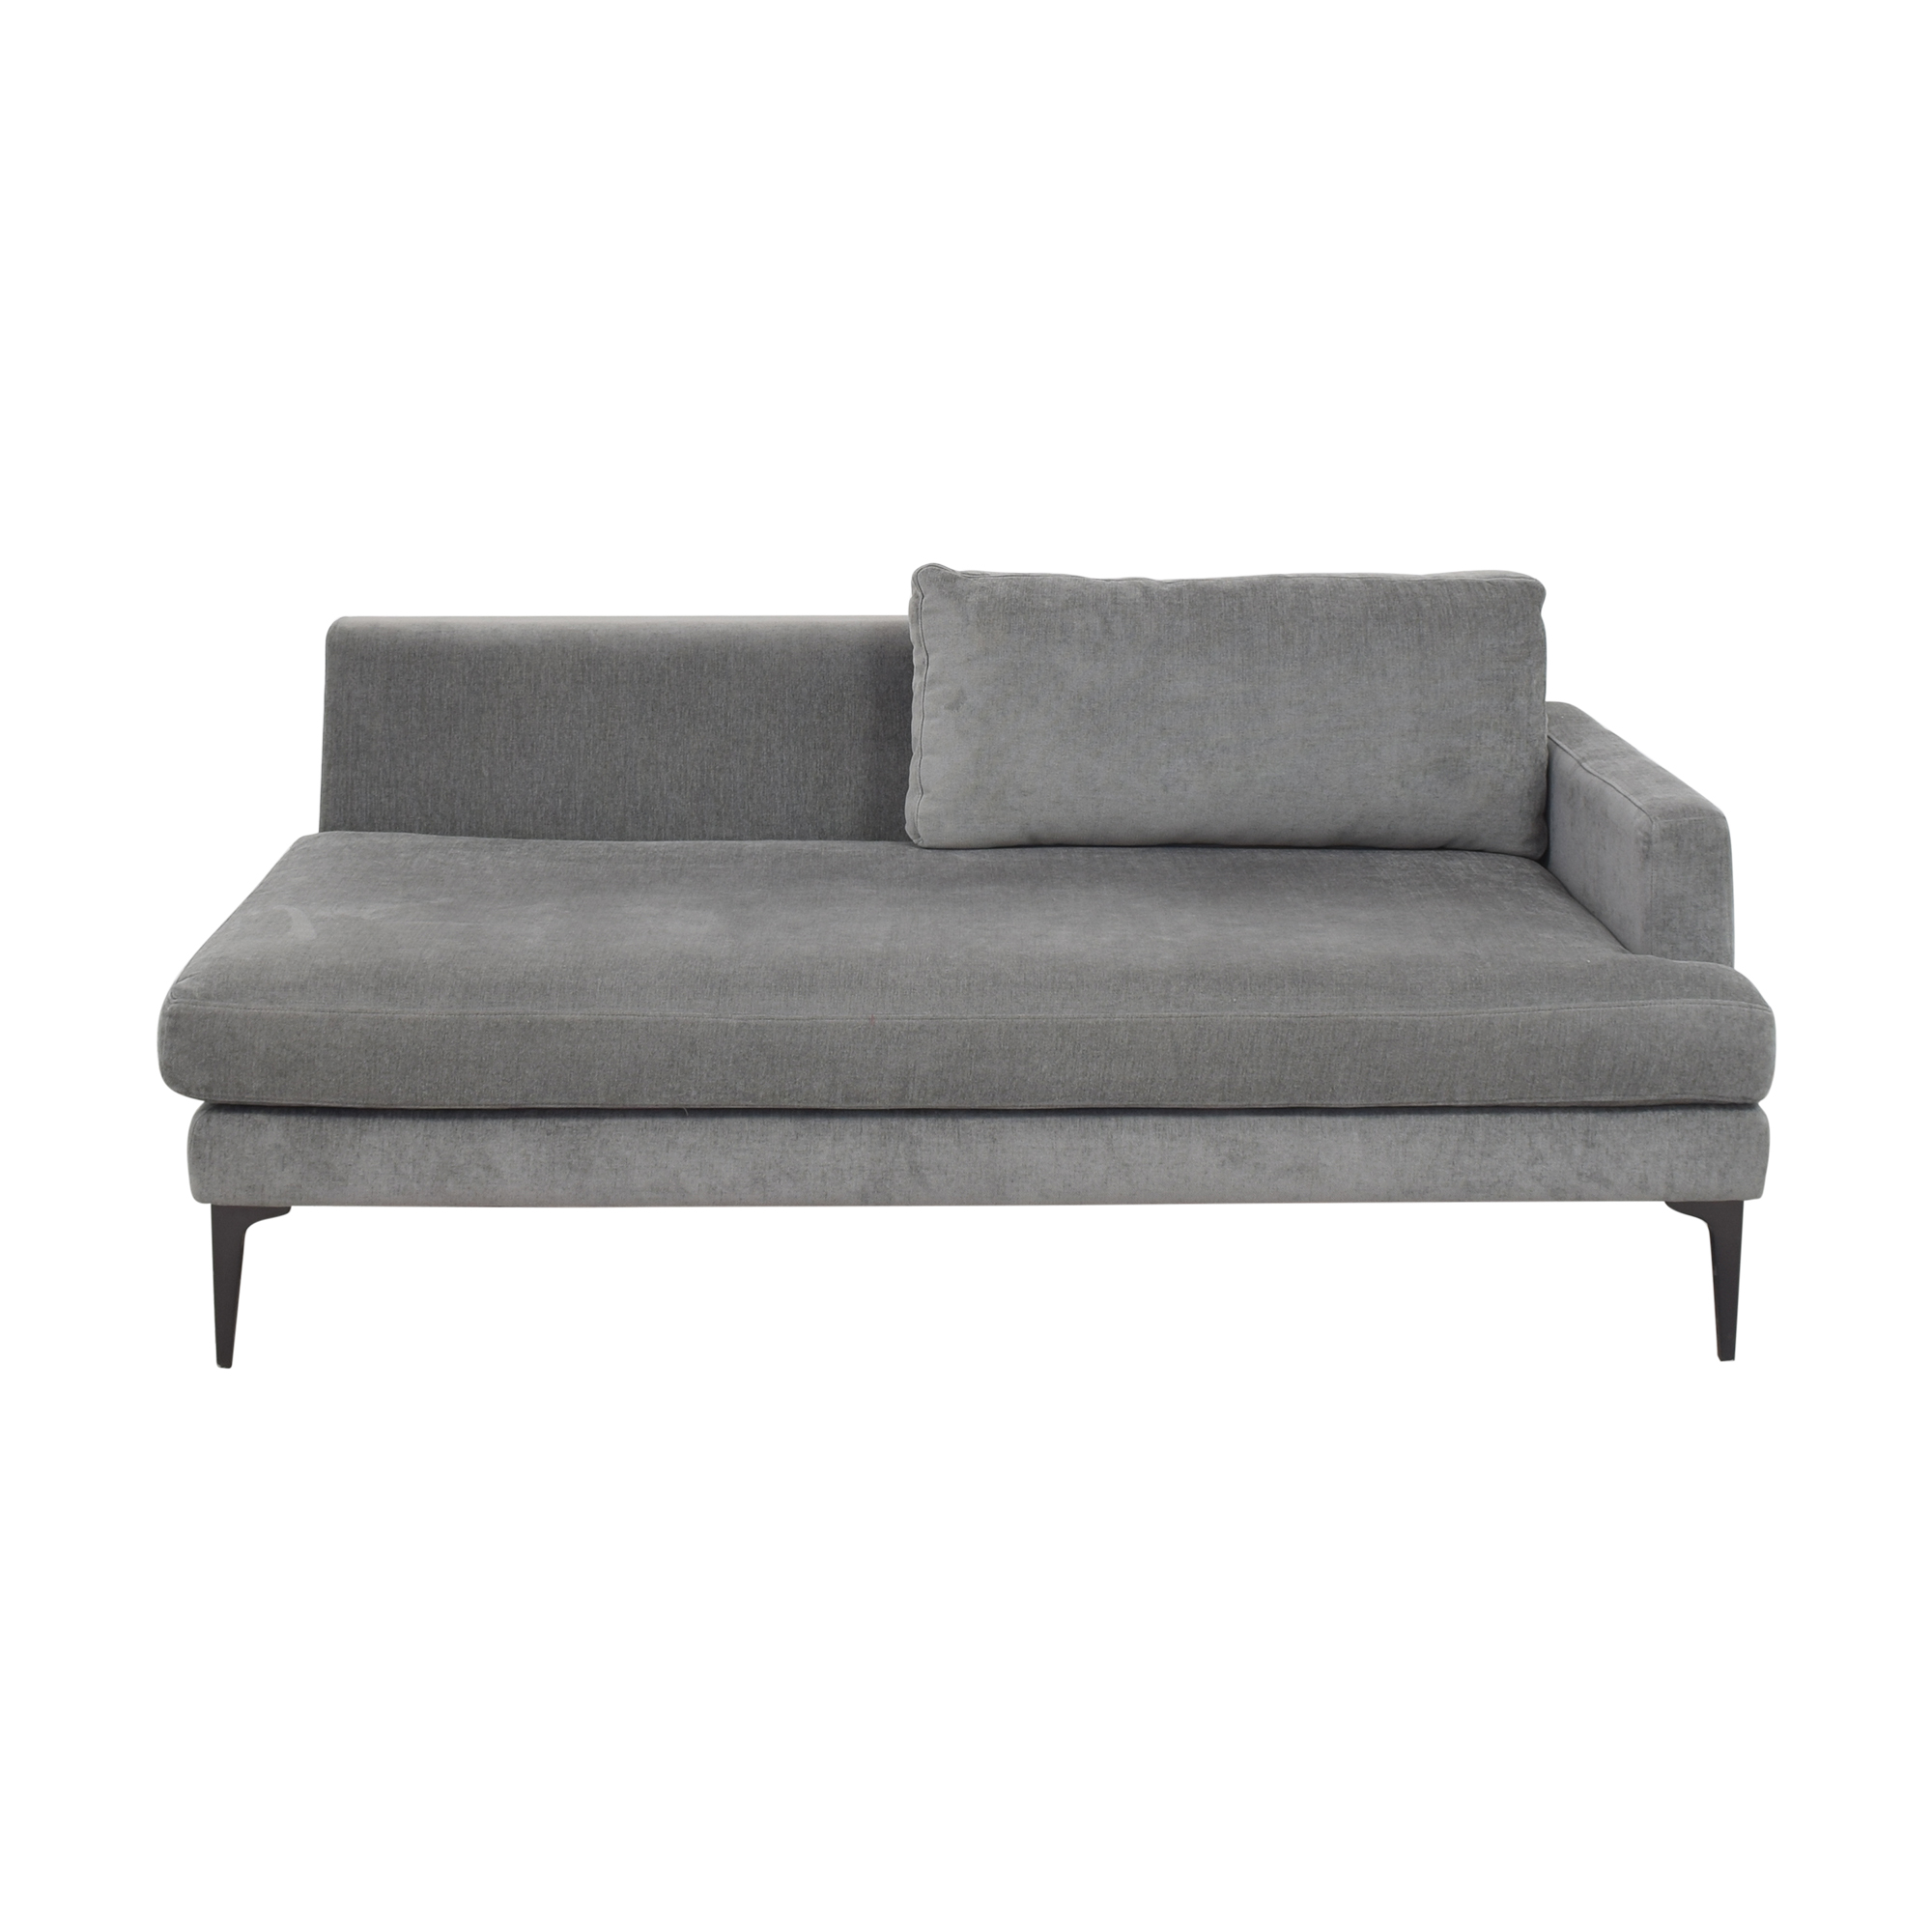 buy West Elm West Elm Andes Right Arm Sofa online